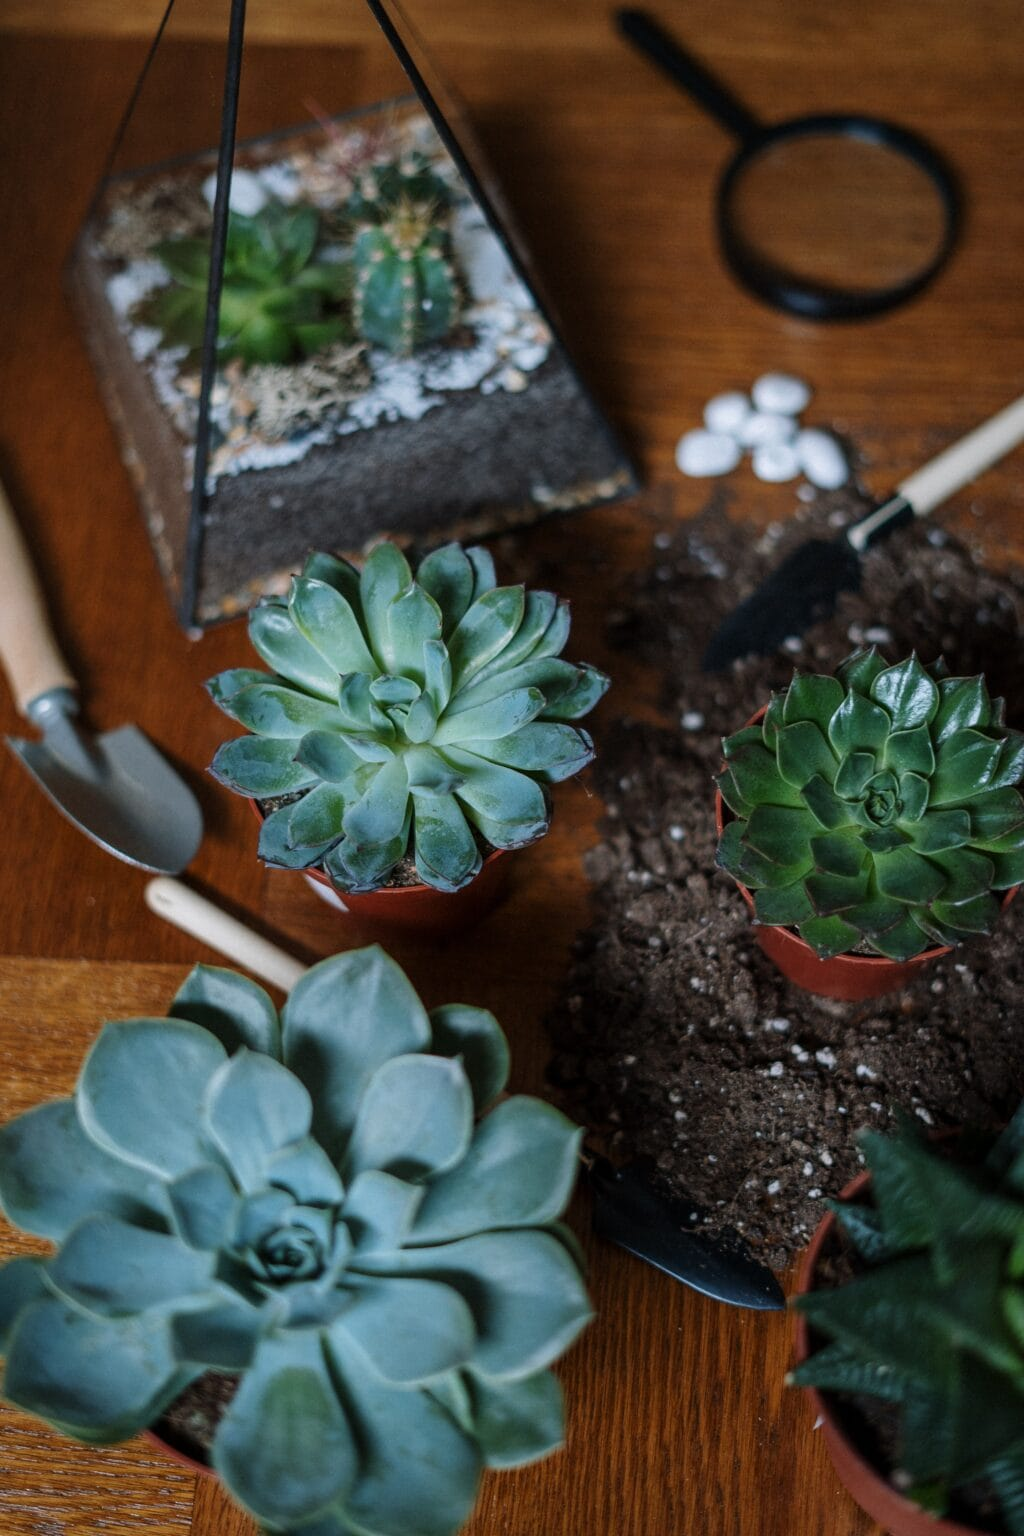 succulent plants and dirt on a table